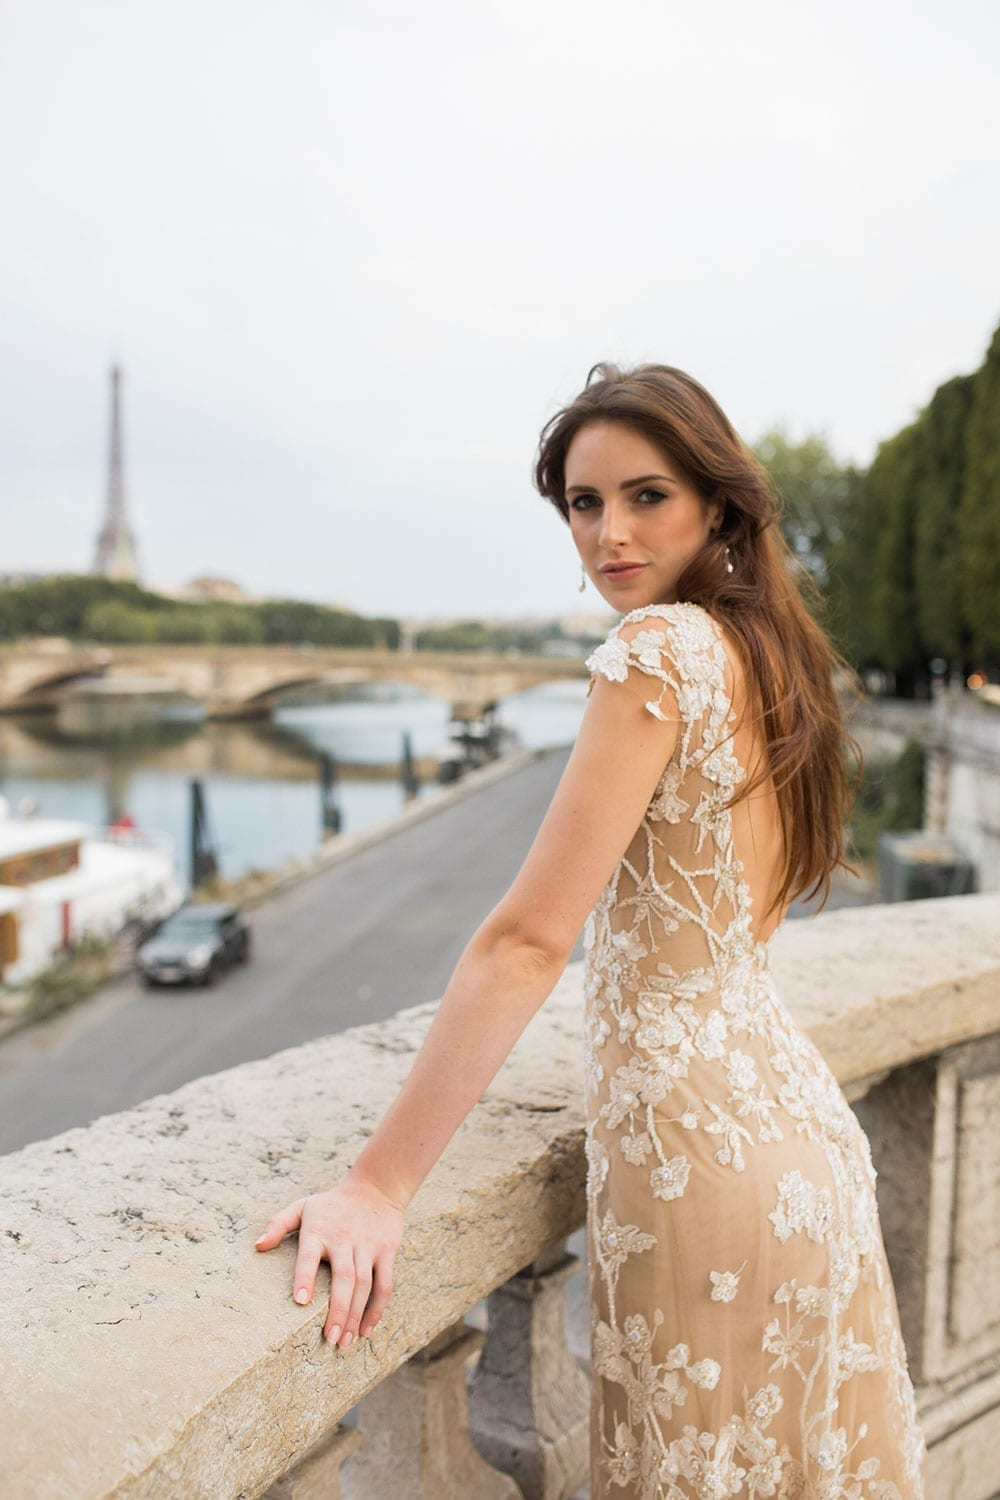 Model wearing Vinka Design Vianna Wedding Dress, a dreamy wedding dress with richly beaded embroidery on a nude base, a slightly sheer skirt and elegant train. Gorgeous low back, little cap sleeves and front v-neckline. Worn on bridge in Paris.